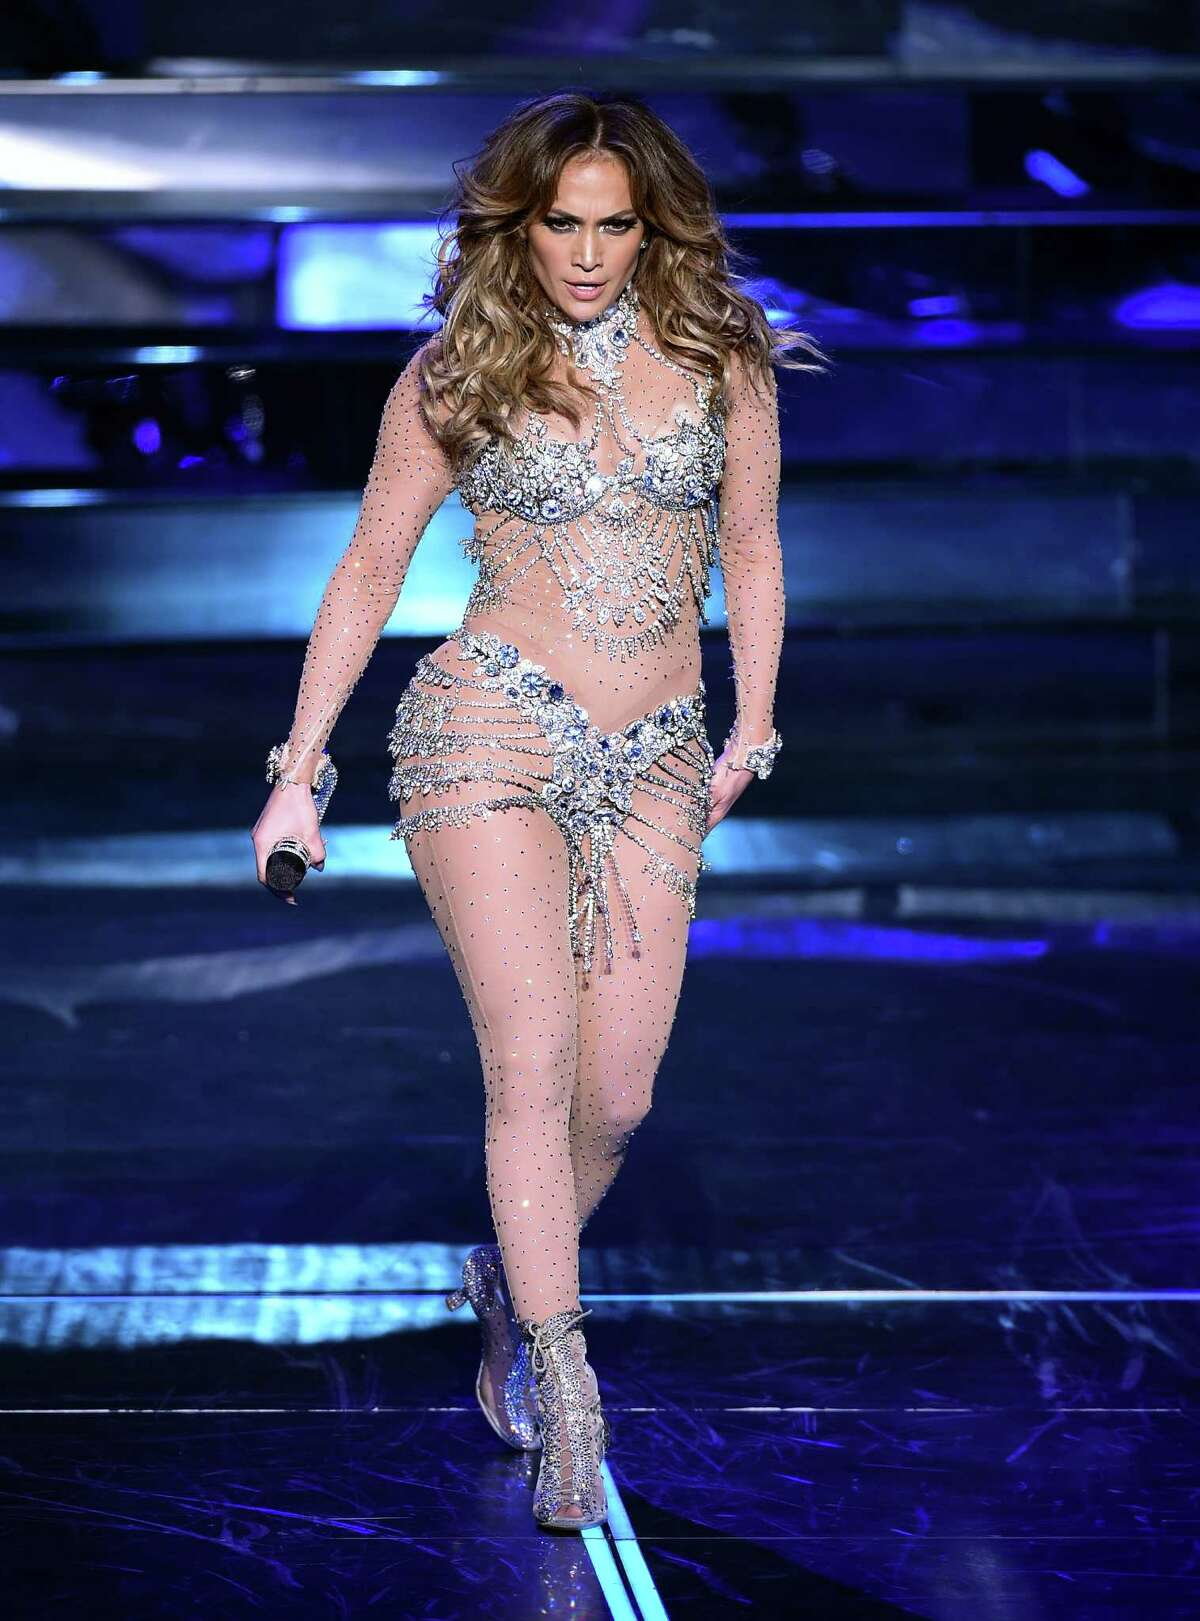 Jennifer Lopez performs during the debut of her residency show JENNIFER LOPEZ: ALL I HAVE at Planet Hollywood Resort & Casino on January 20, 2016 in Las Vegas, Nevada.